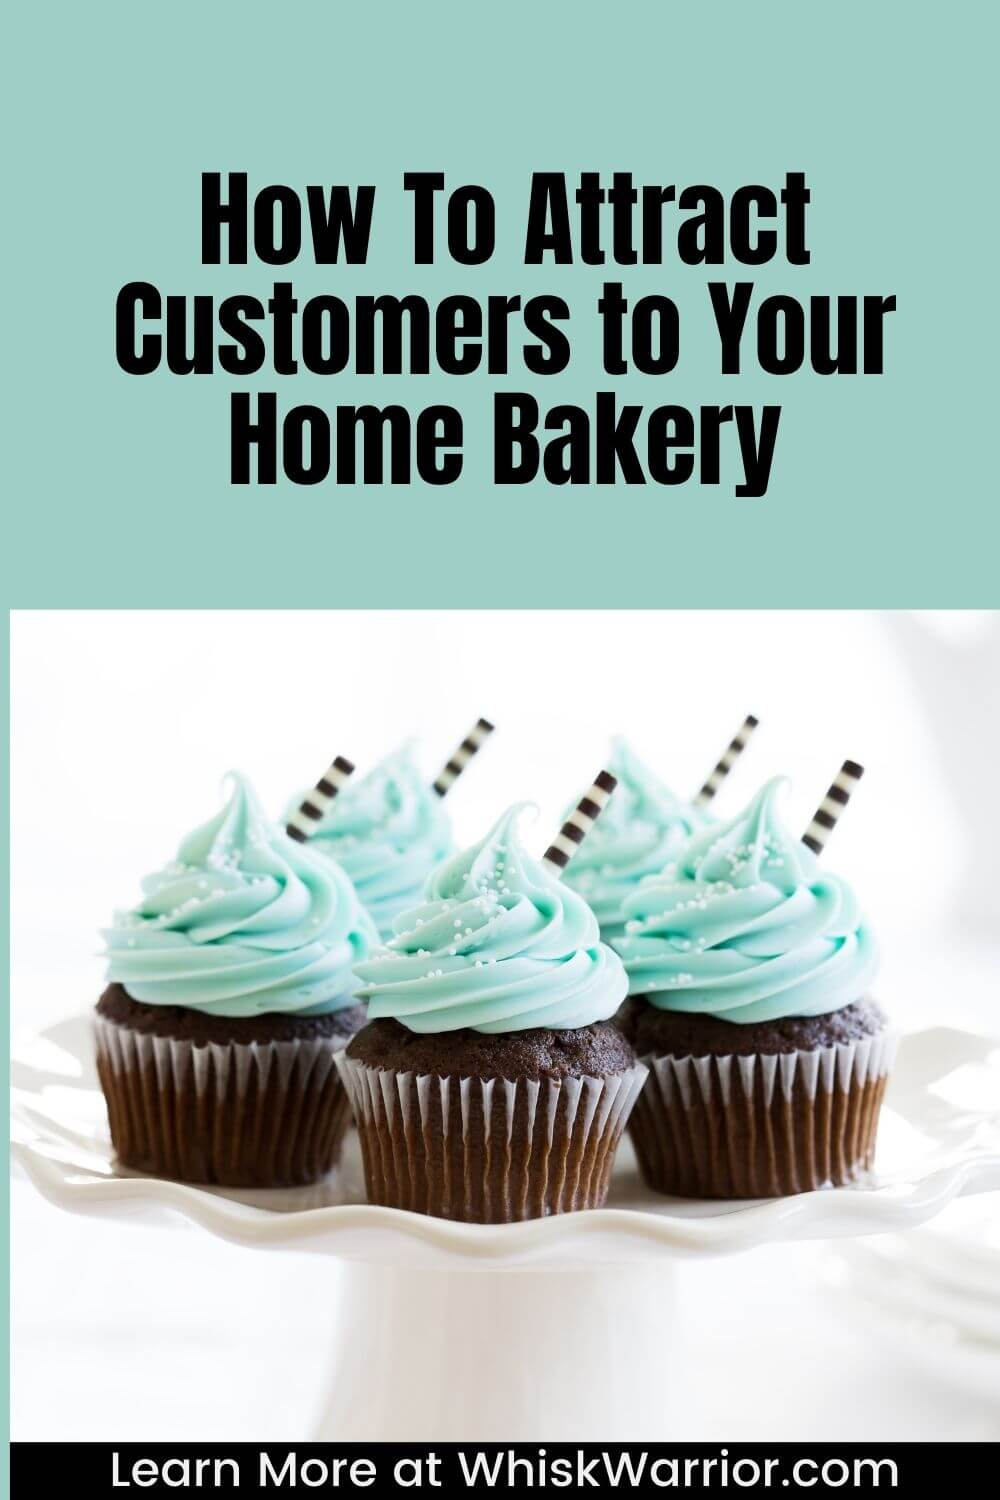 Using social media platforms, spreading business cards and flyers, receiving and posting positive customer reviews, and maintaining a delicious, consistent menu are all ways that will help attract customers to your home bakery.